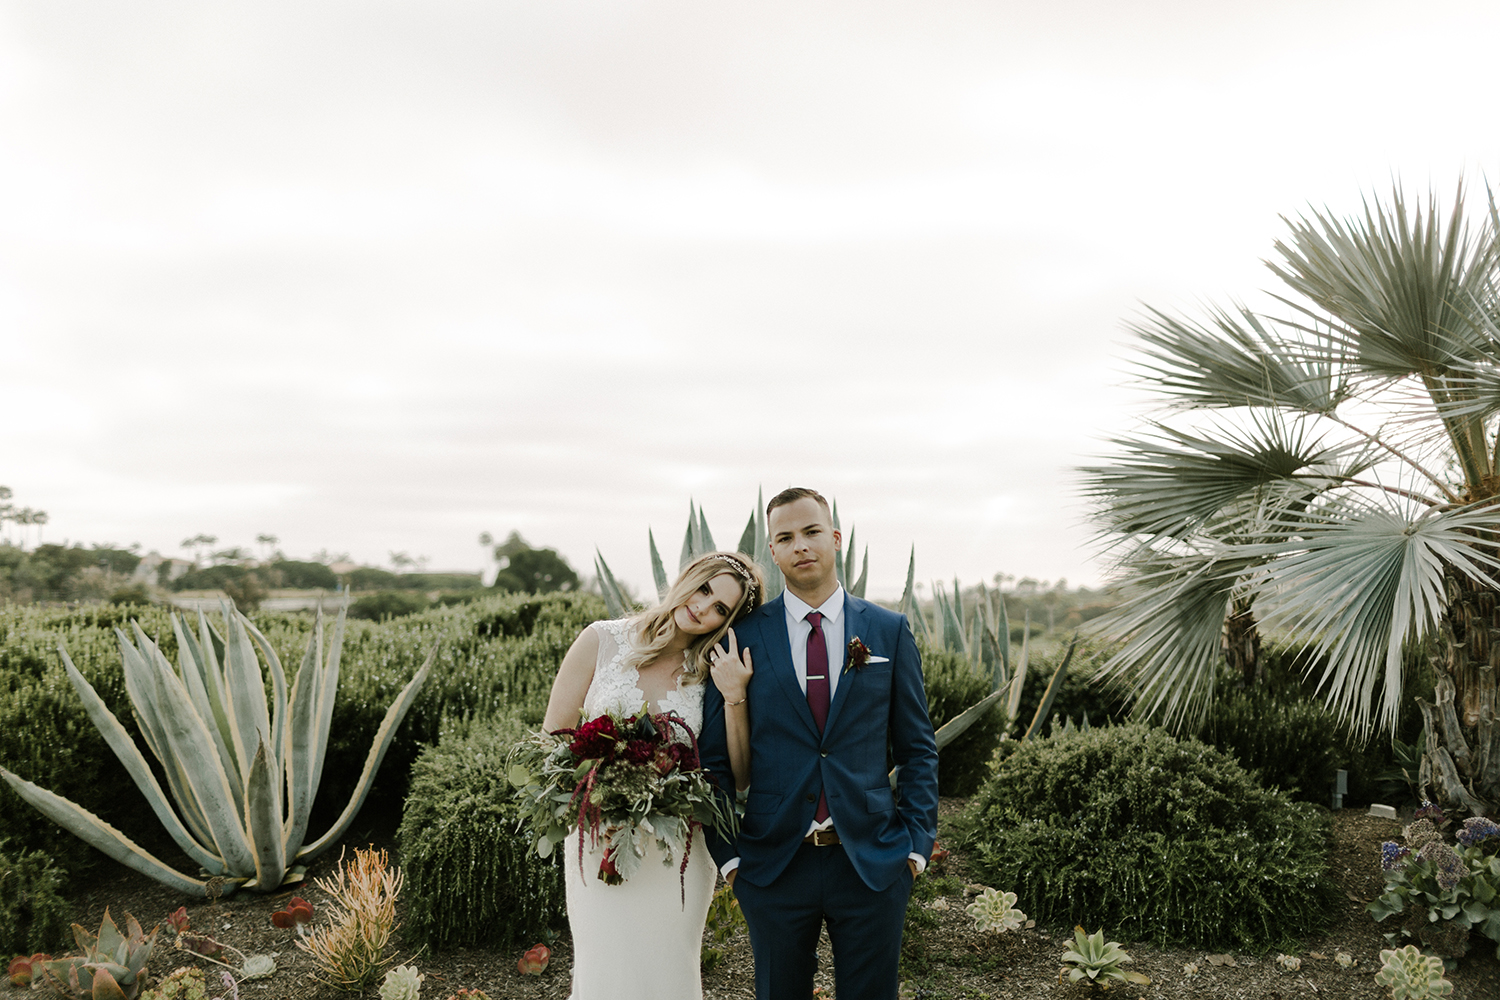 Merlot Colored Wedding / Monarch Beach Resort Wedding / Oceanfront Wedding / Greenery / Lucky Day Events Co. / Morgan Hydinger Photography and Videography